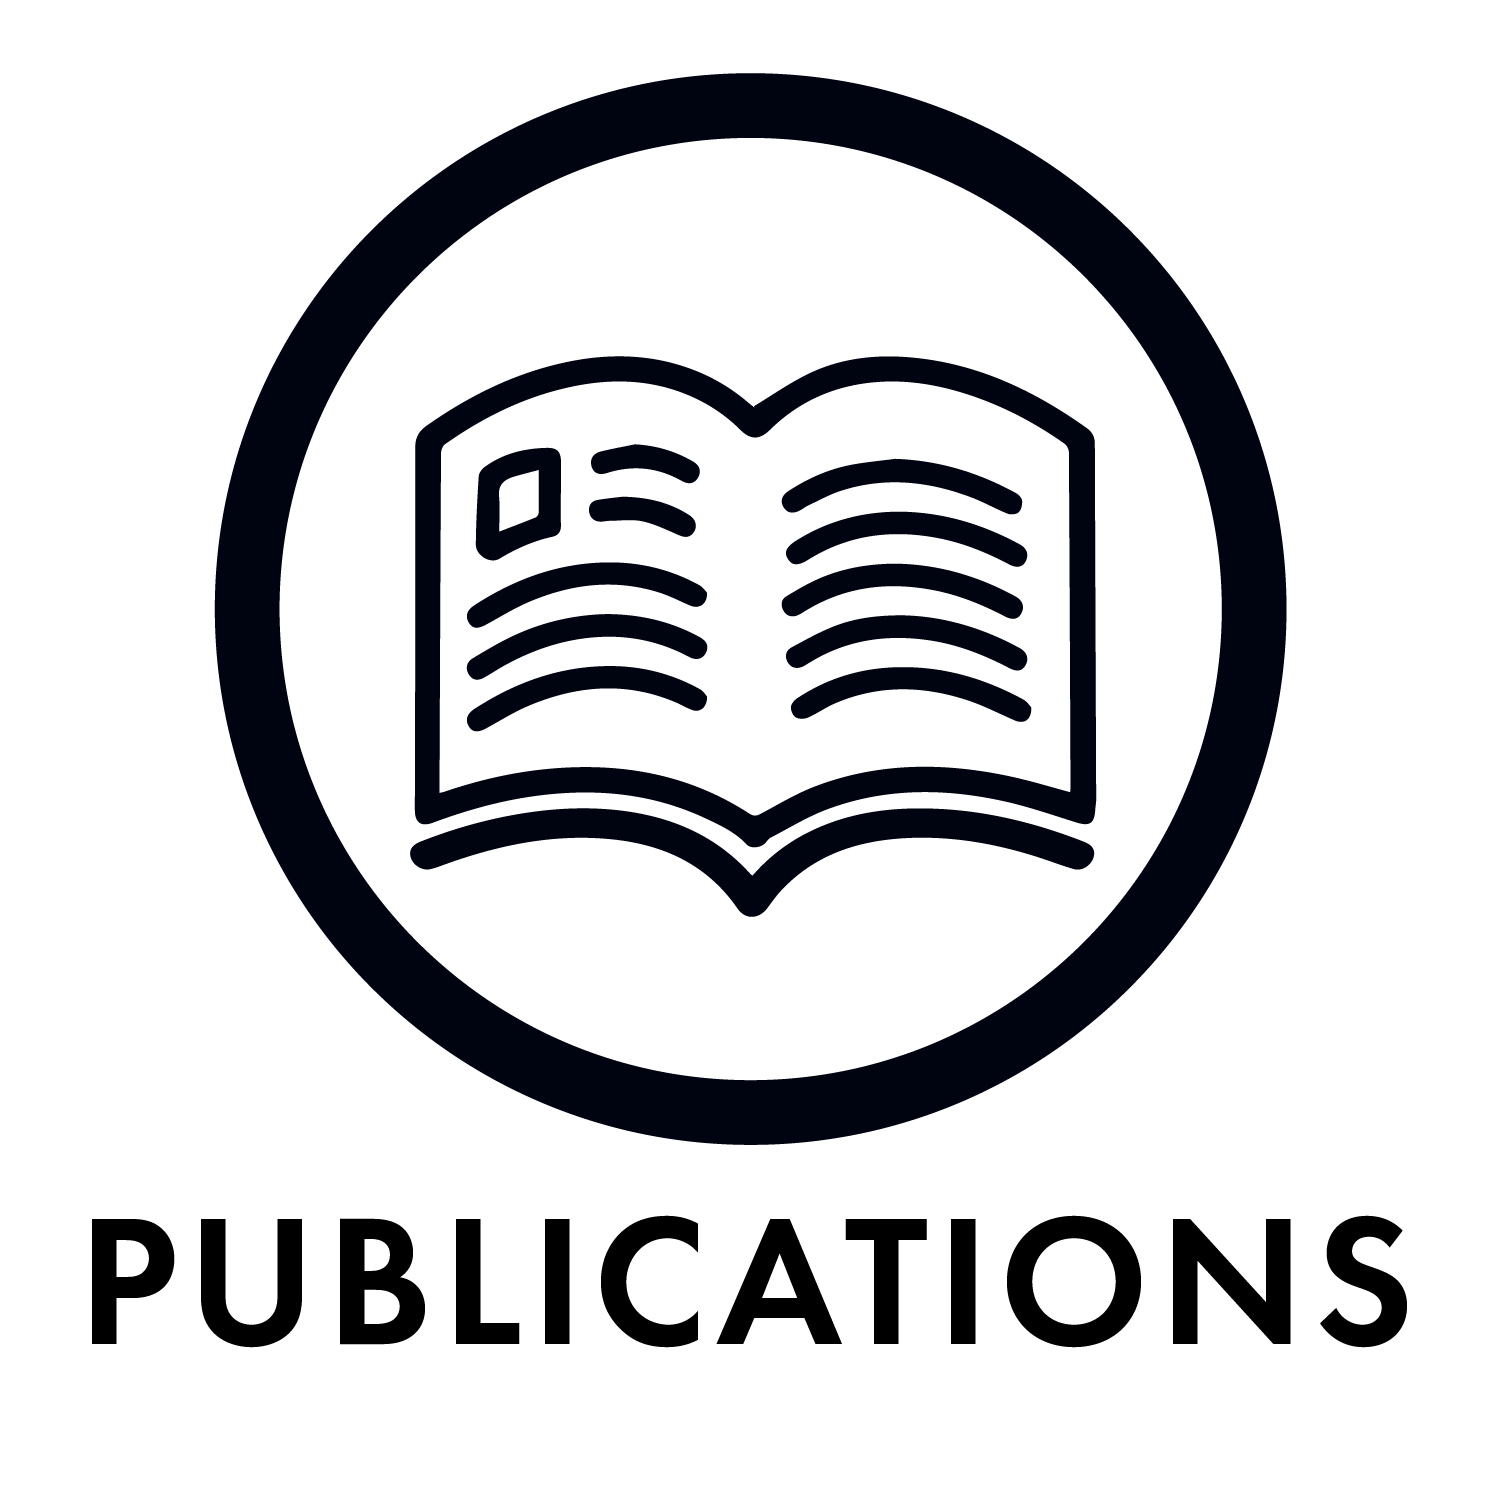 Icons_AW_Publications.jpg